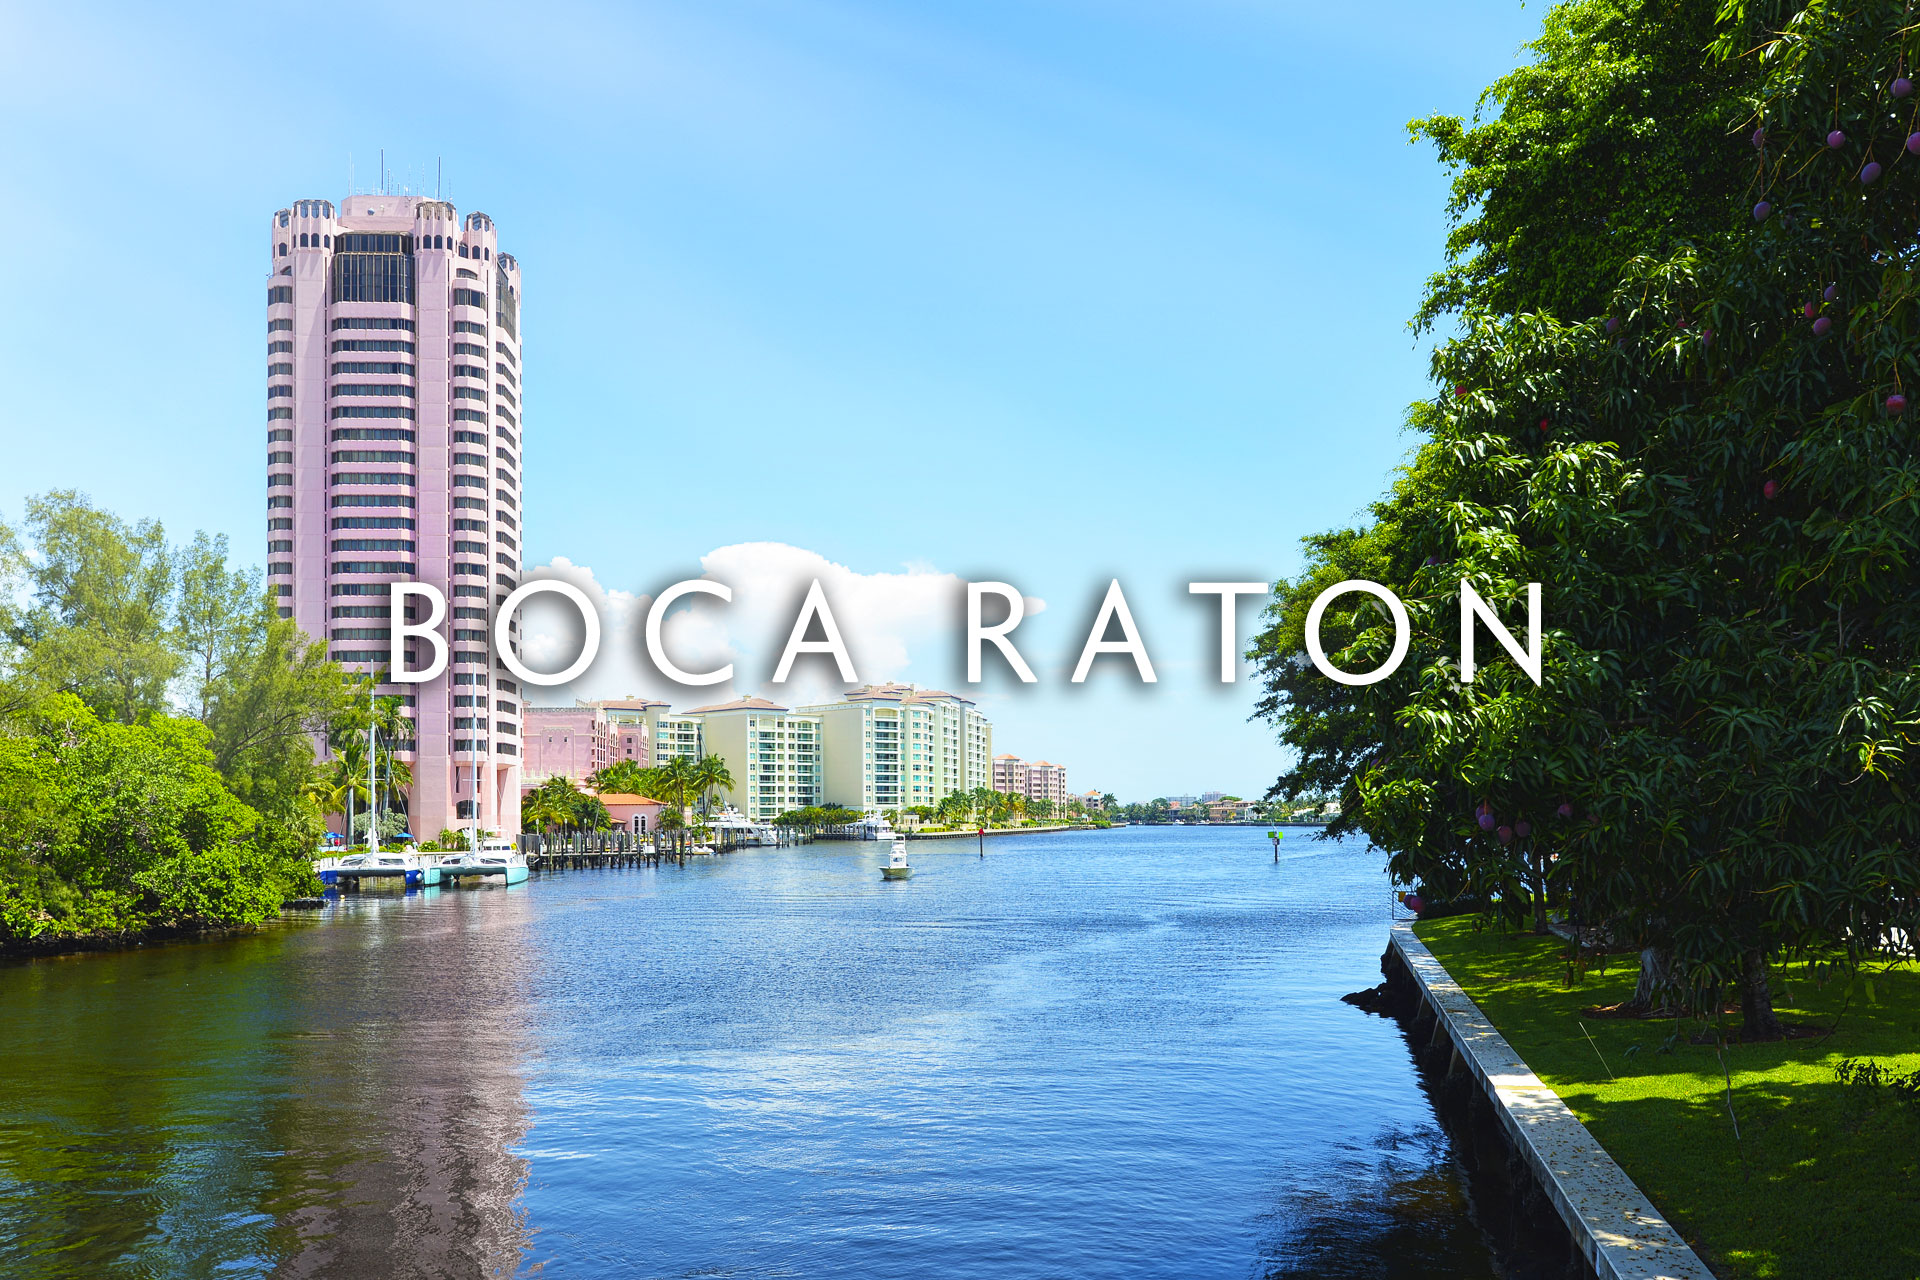 Boca Raton Homes to Buy from Realtor D. Alex Vaughn is owner of the Vaughn Luxury Real Estate Group focusing on Real Estate in the MIami and Detroit Markets.